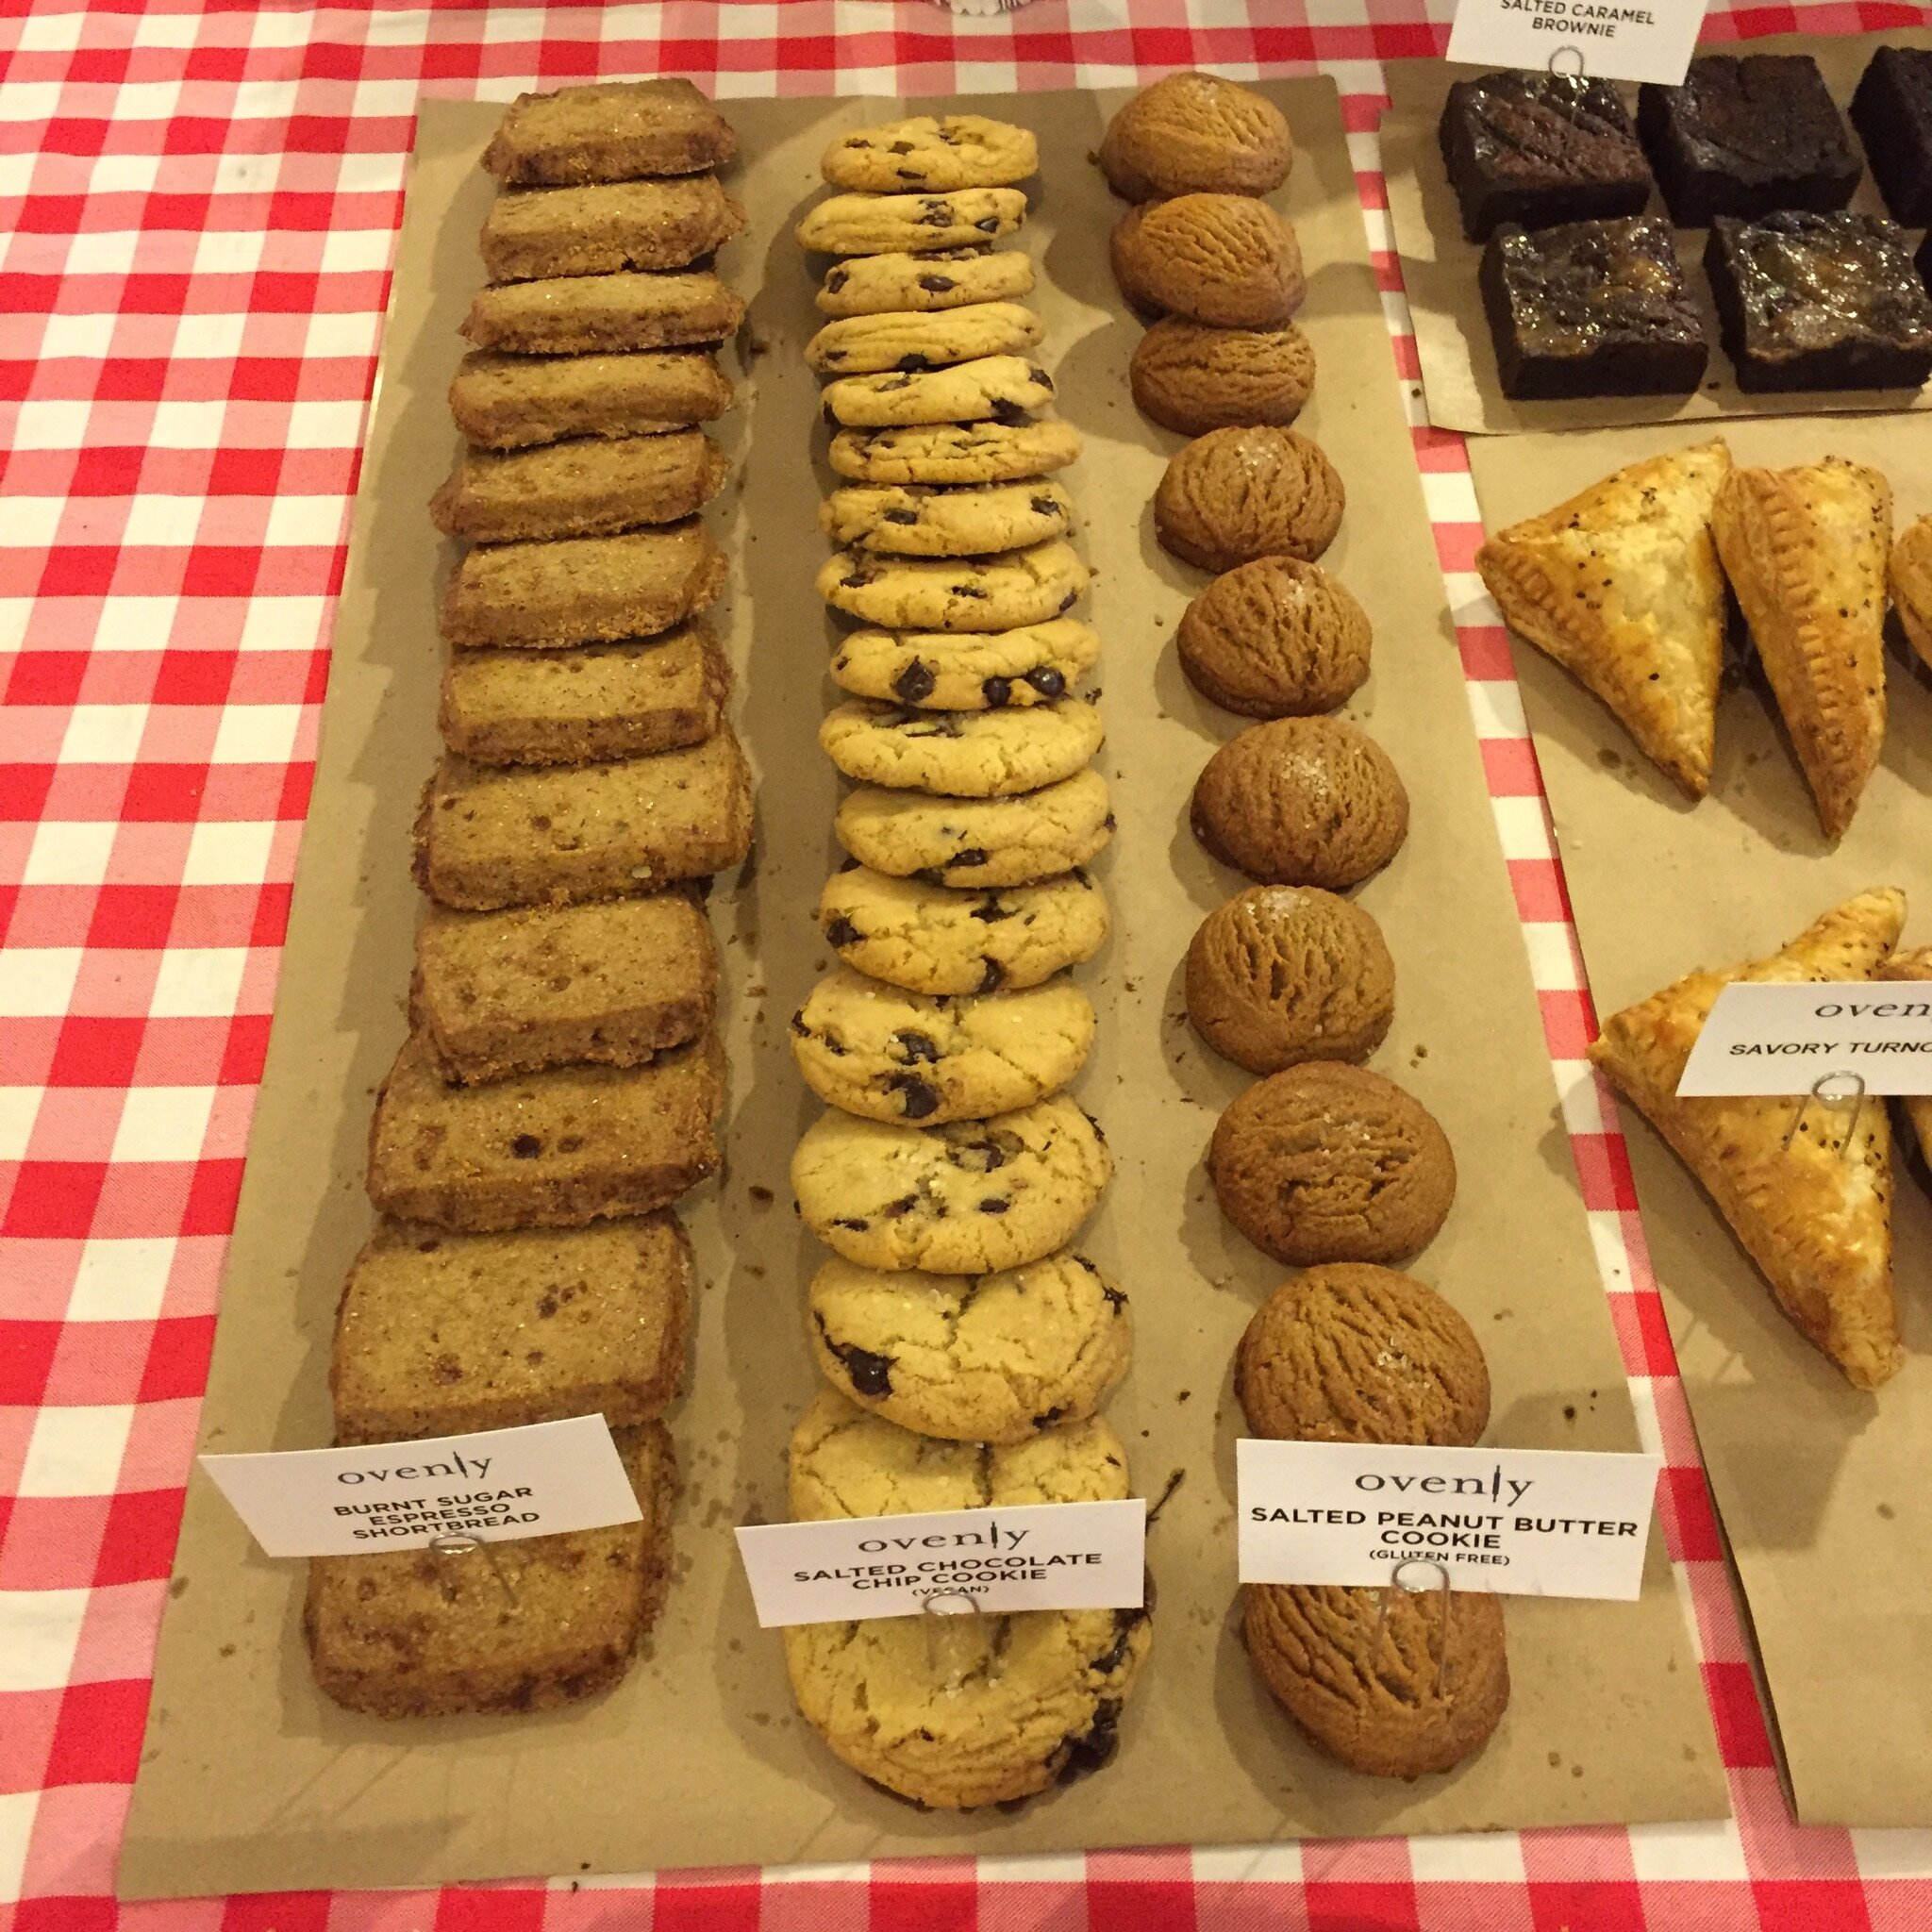 Shortbreads, Salted Chocolate Chip Cookies & Salted Peanut Butter Cookies